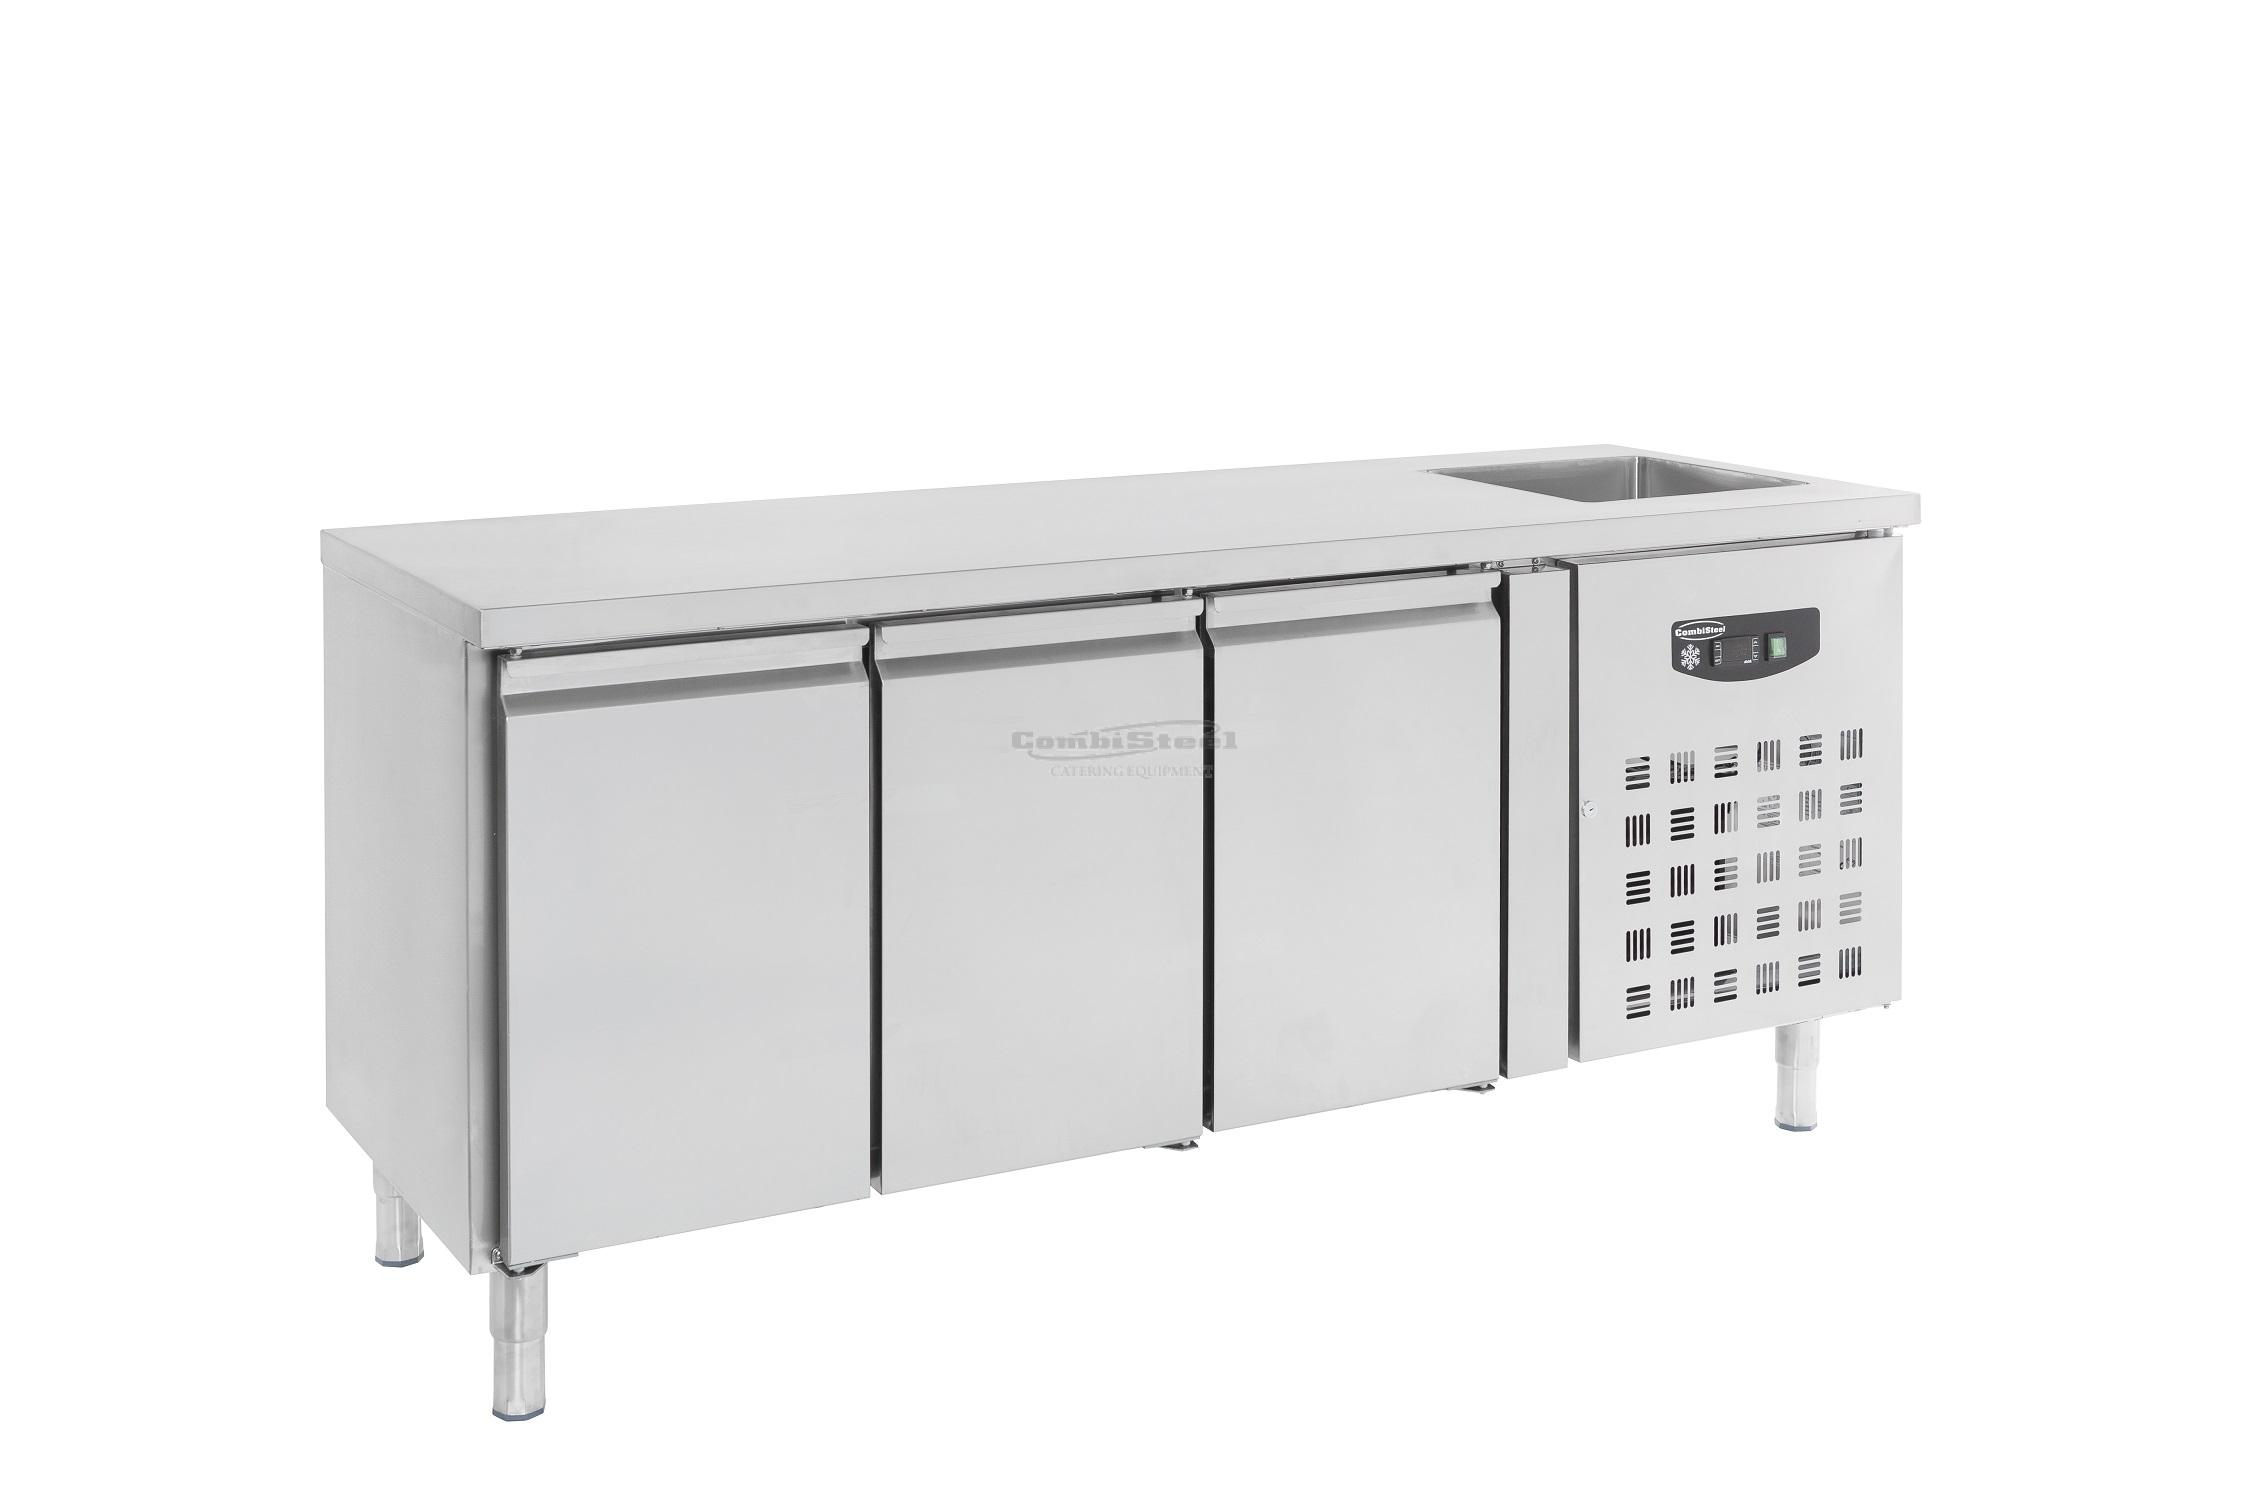 700 REFRIGERATED COUNTER SINK 3 DOORS - 7450.0215 | Spiteri Catering